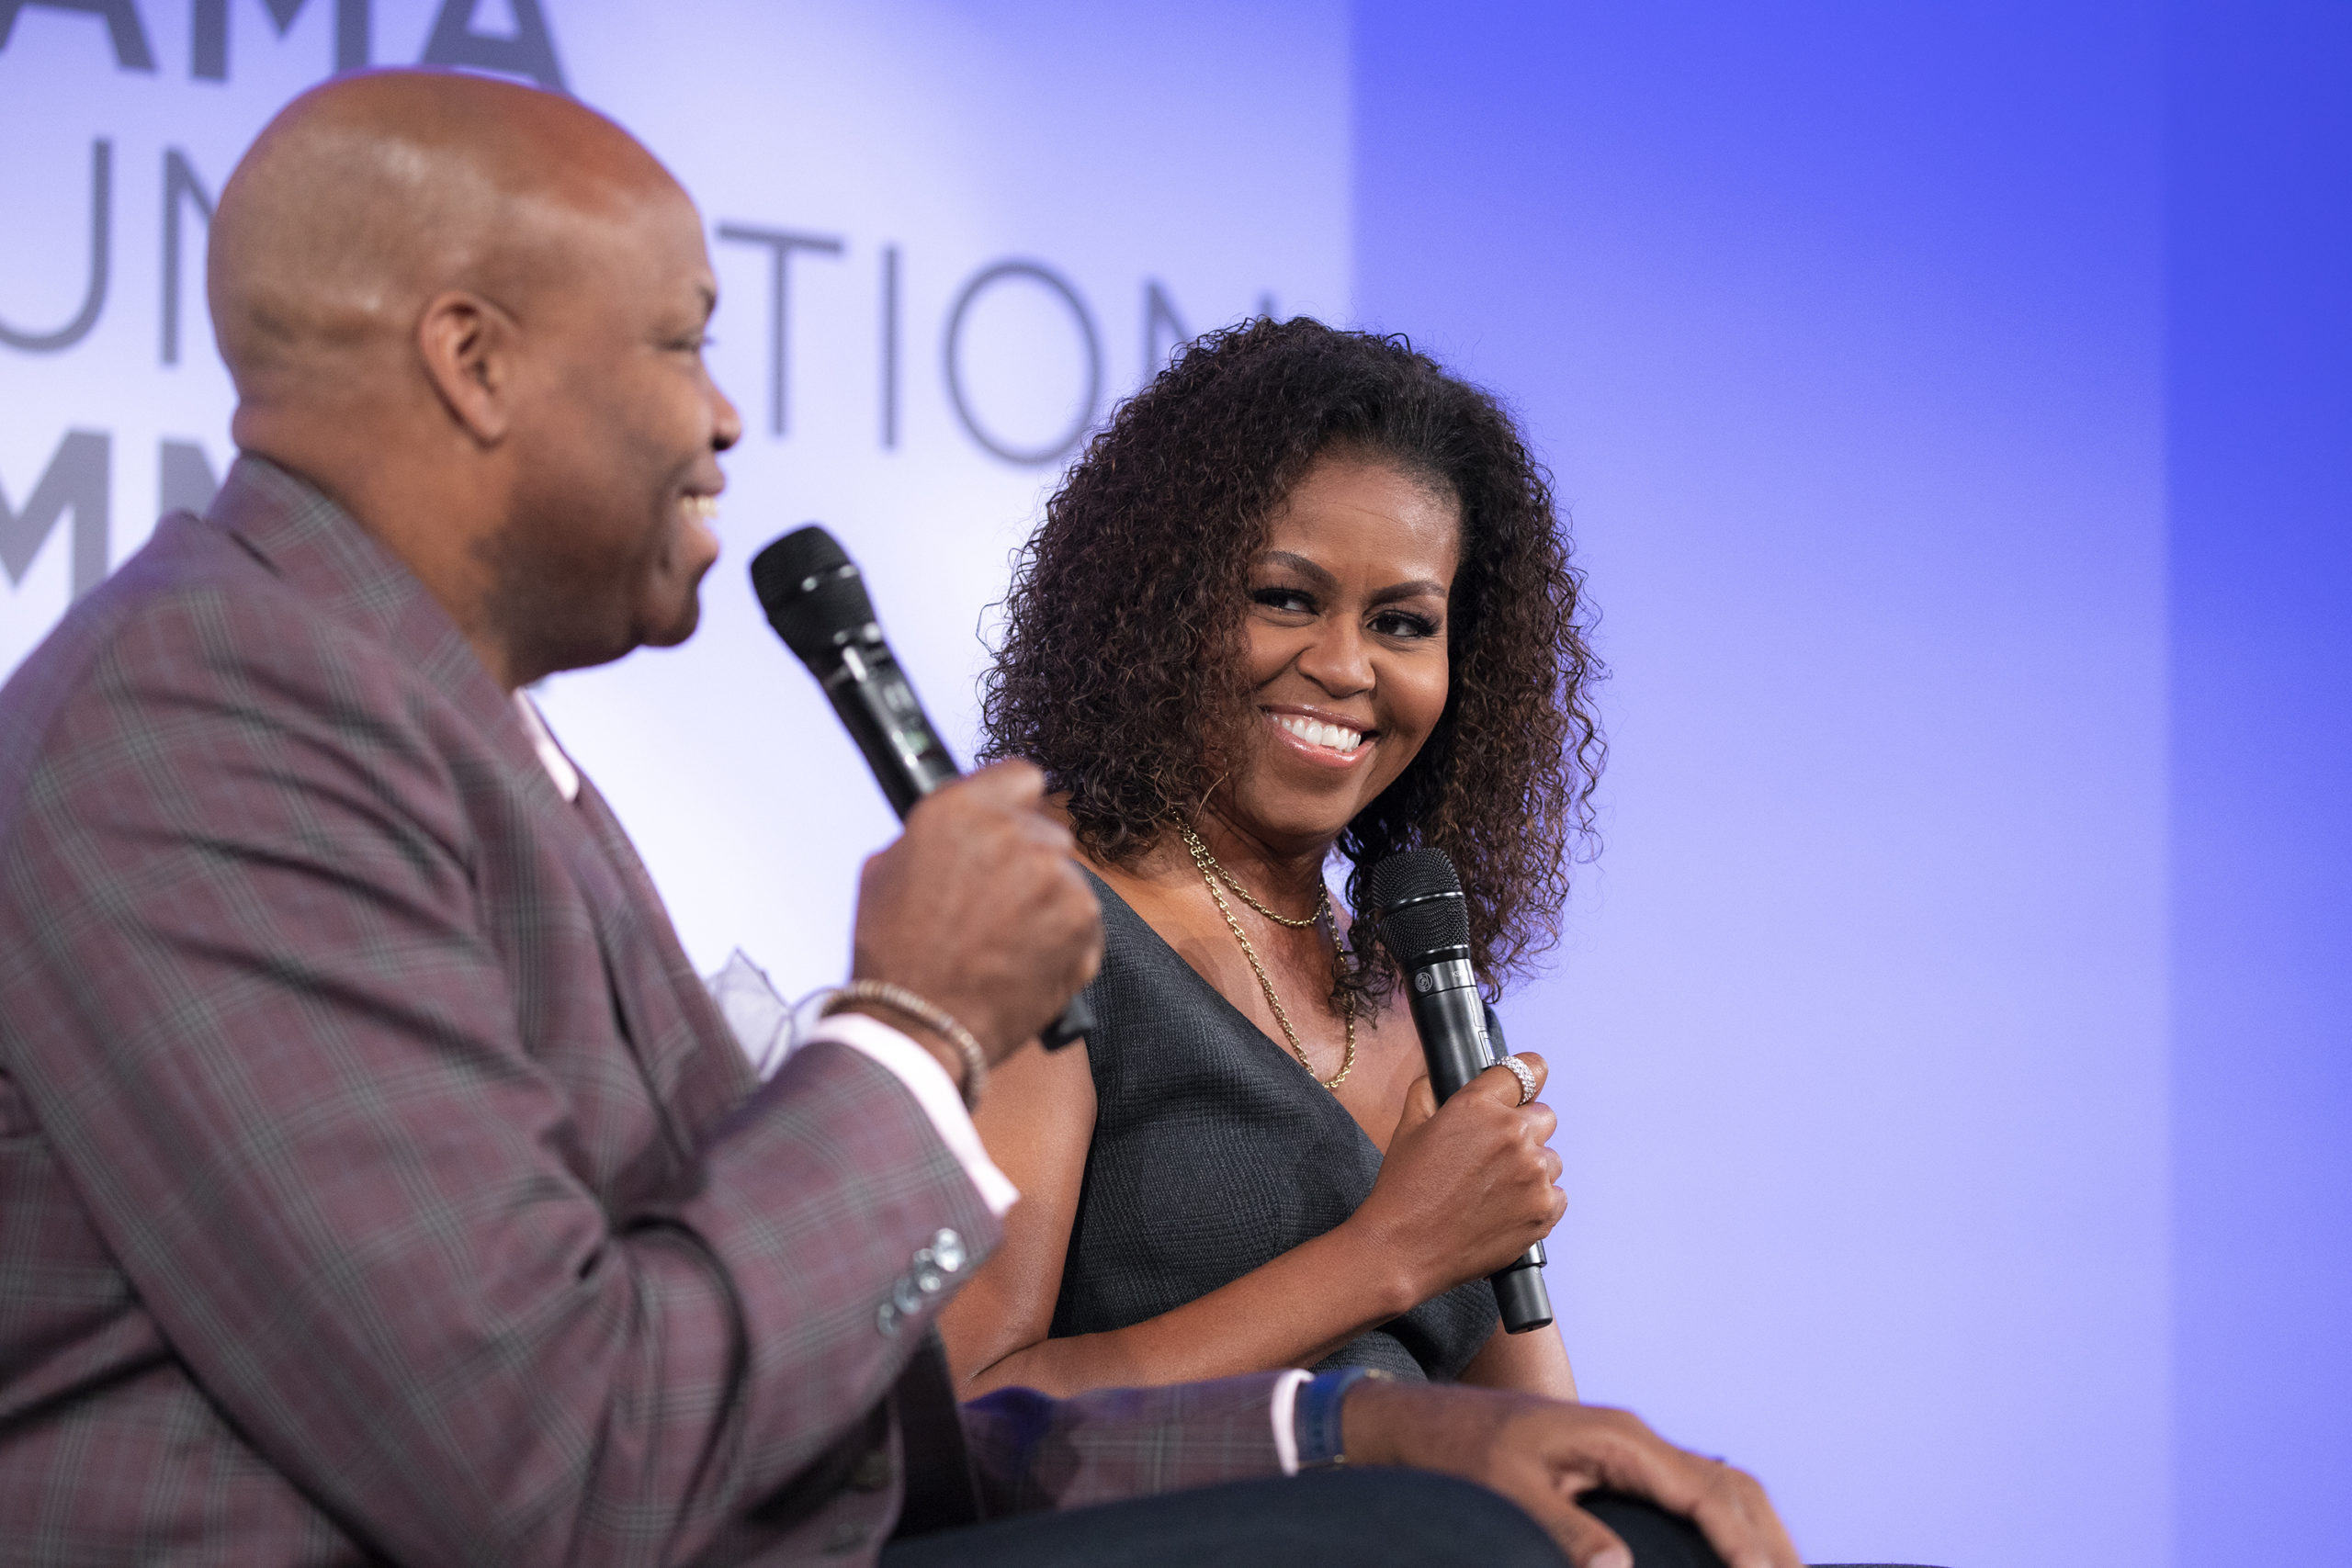 Mrs. Obama gives a knowing smile to her older brother, Craig, as he speaks into a mic.